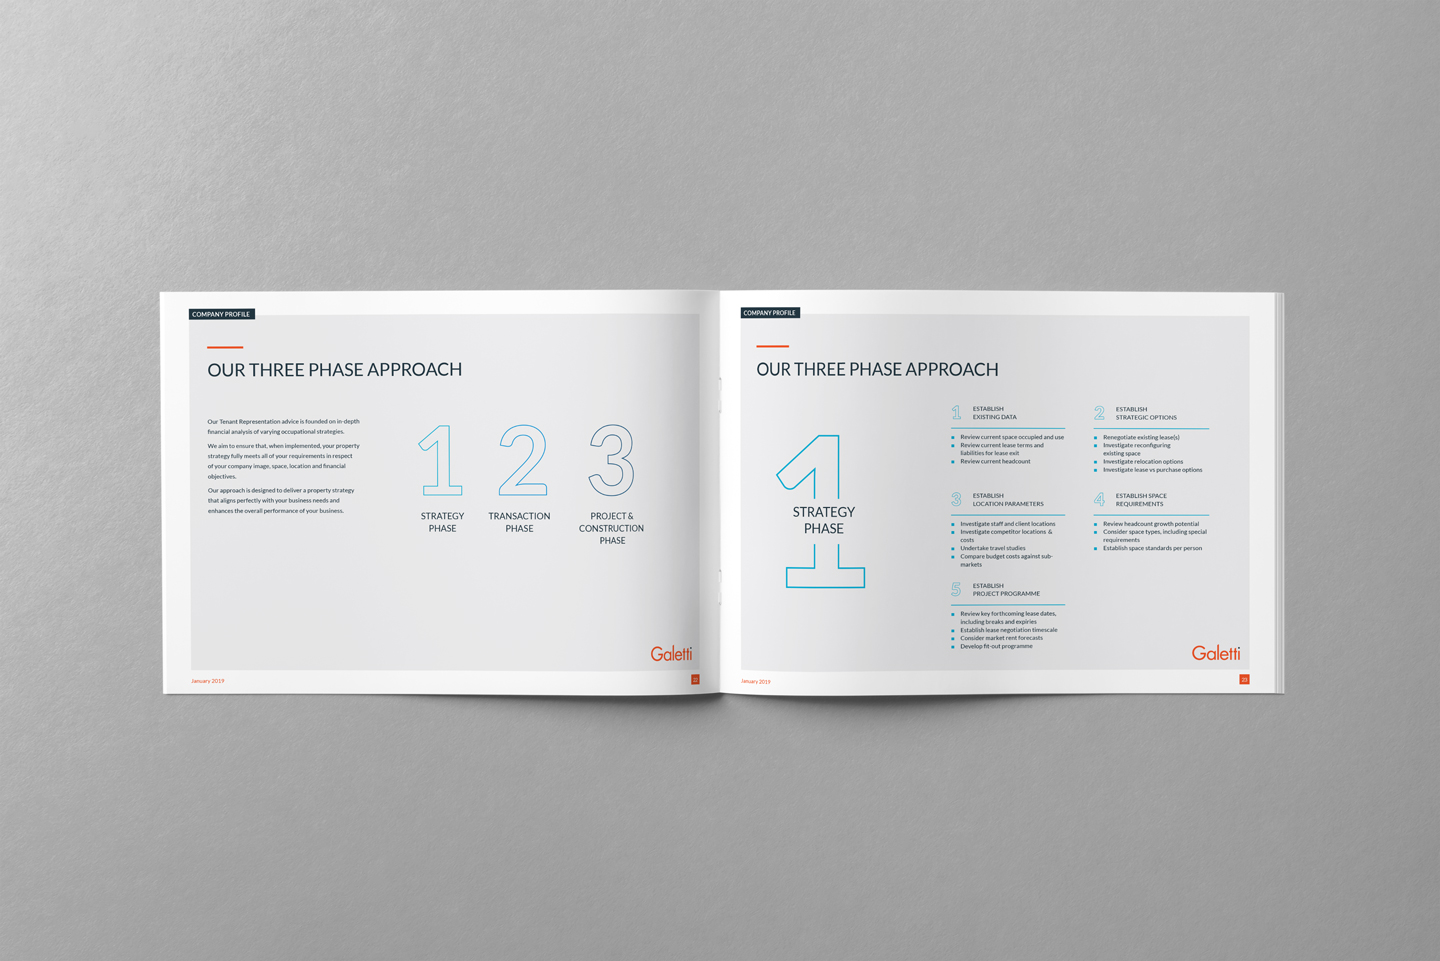 Galetti CRE corporate identity design 5